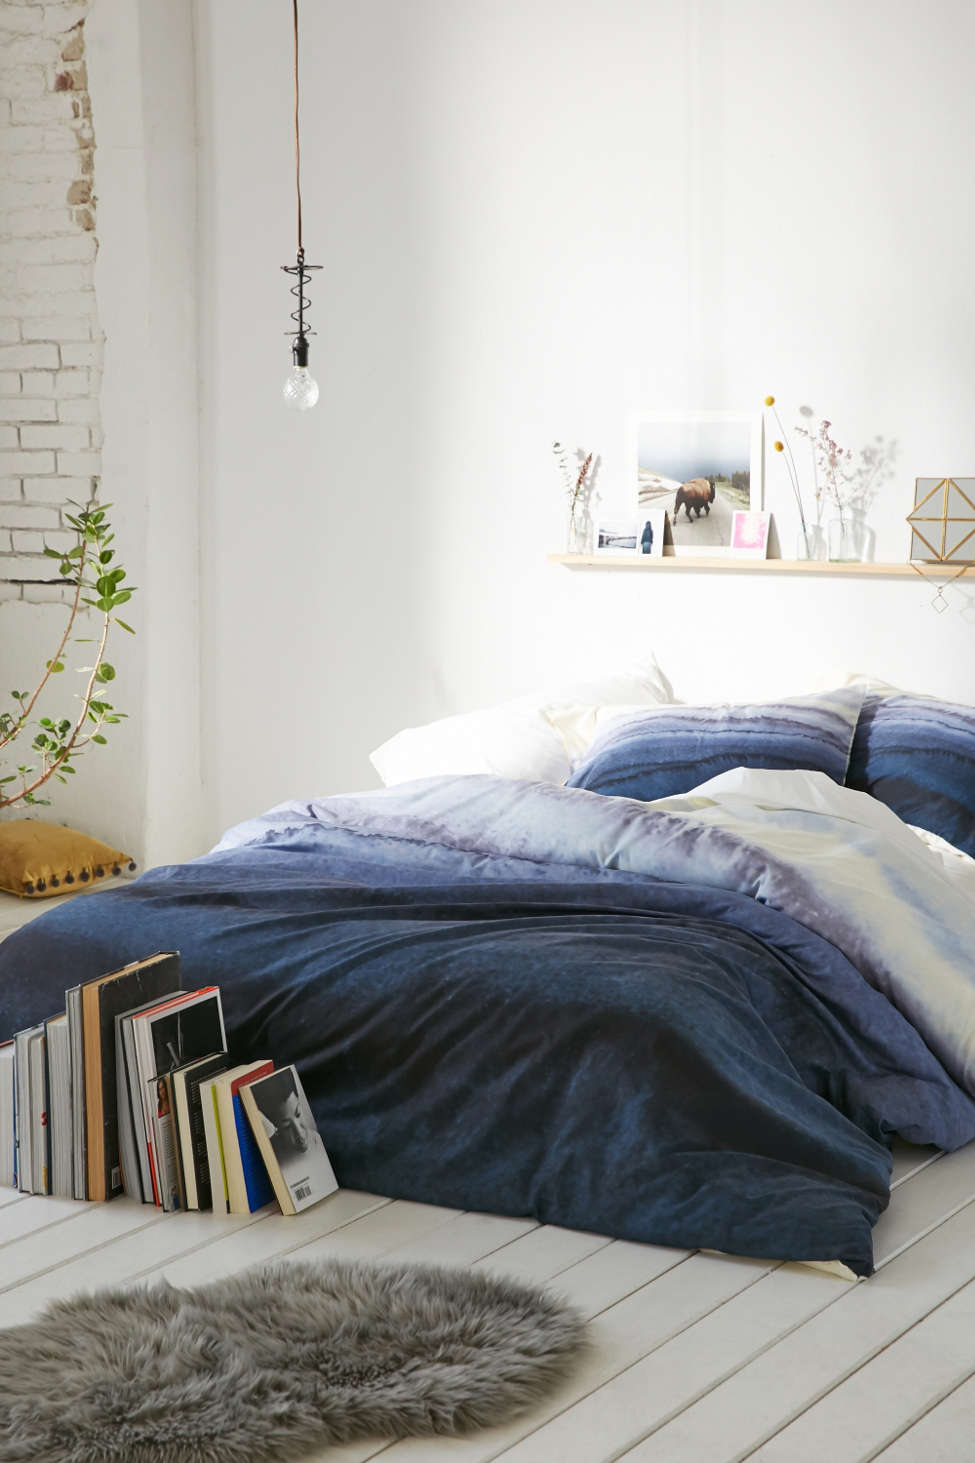 Slide View: 1: Monika Strigel For DENY Within The Tides Duvet Cover